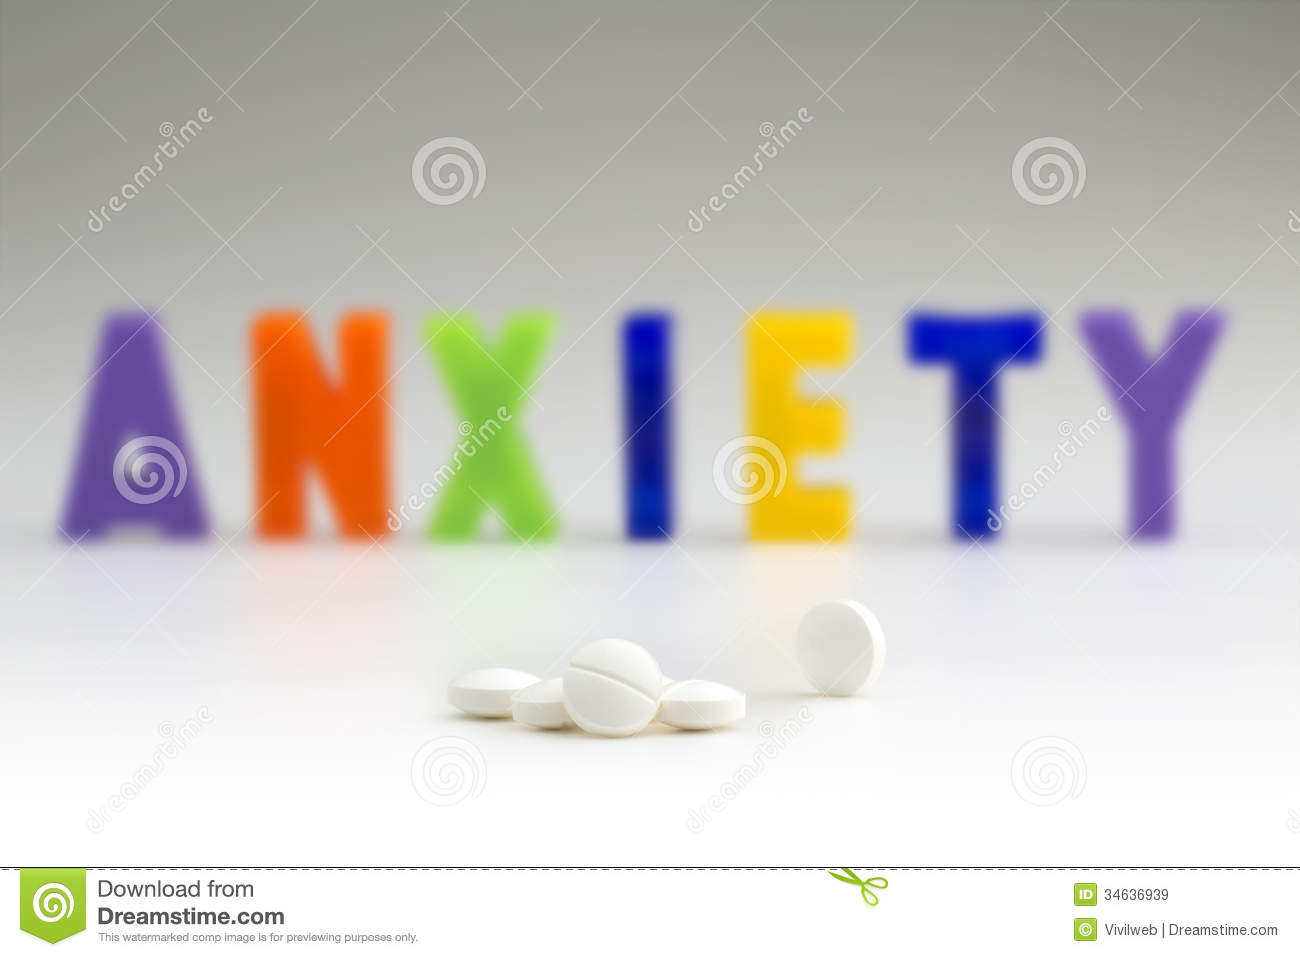 anxiolytics royalty free stock images - image: 34636939, Skeleton